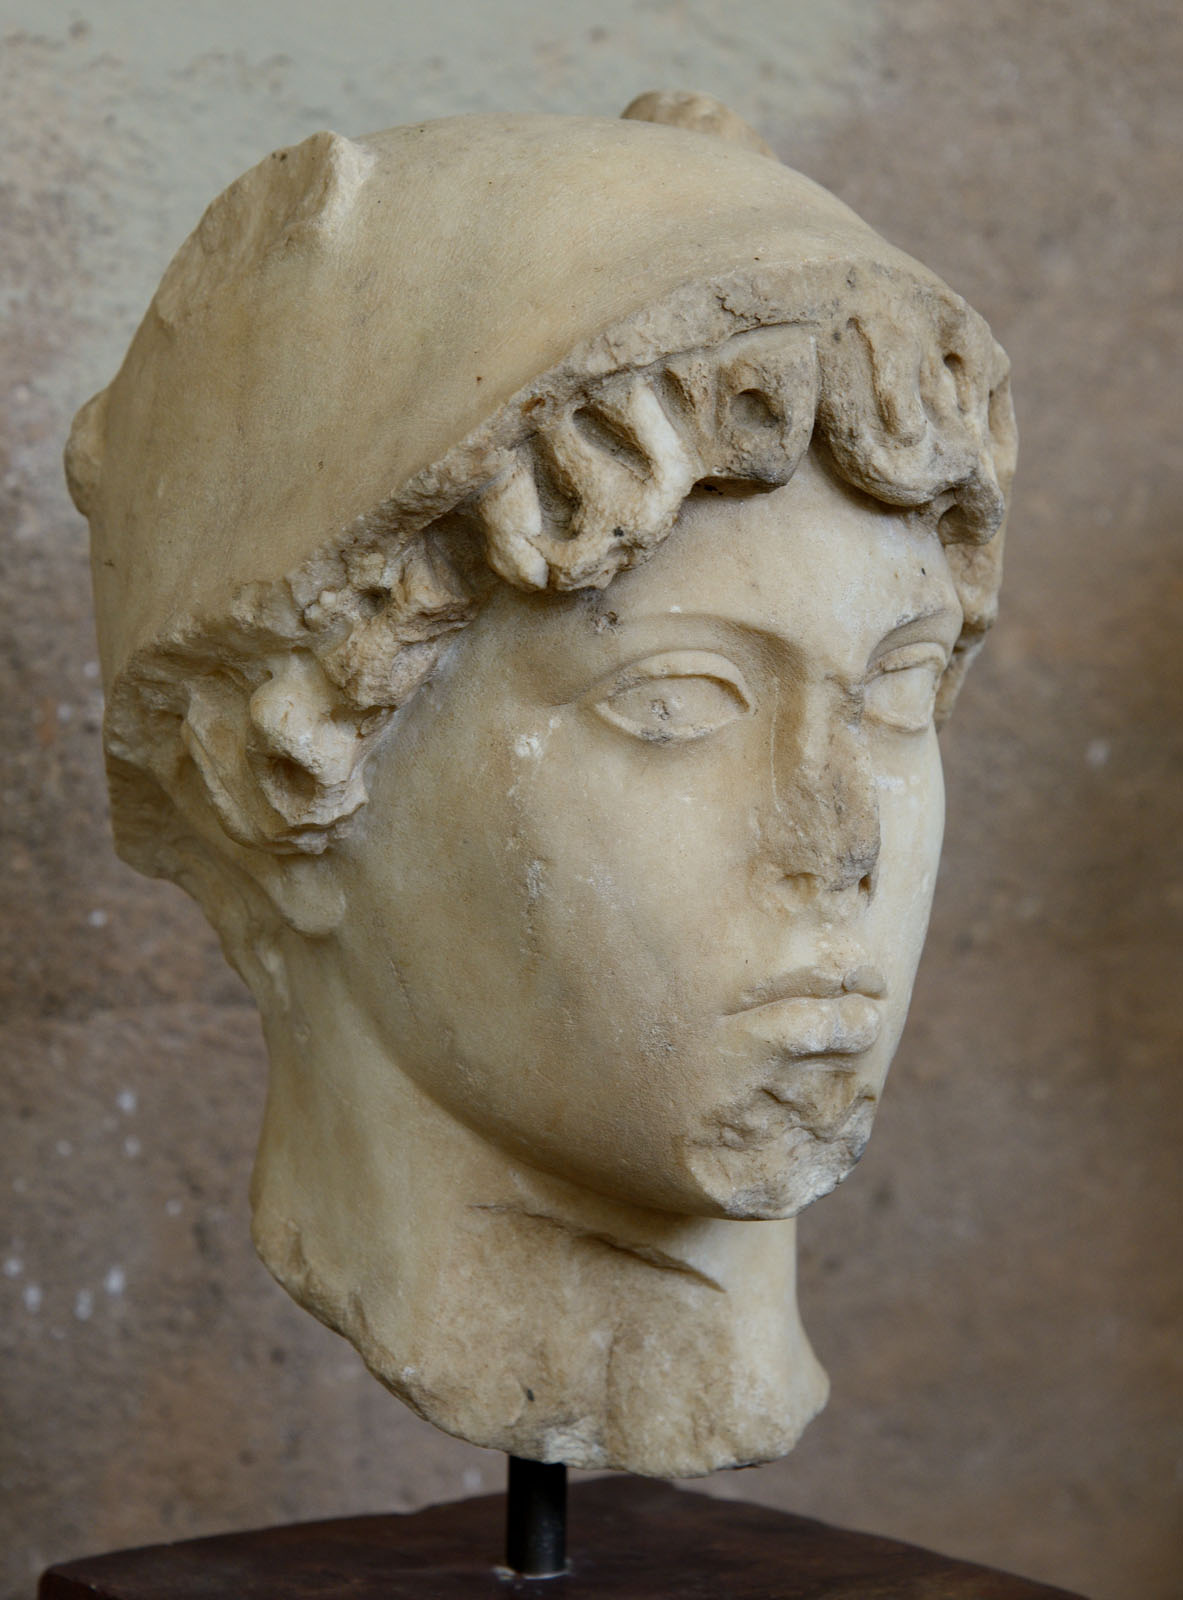 Head of Hermrs or Perseus. Marble. Copy of a prototype of the 5th cent. BCE made in 2nd cent. BCE. Inv. No. S-72-4. Corinth, Archaeological Museum of Ancient Corinth